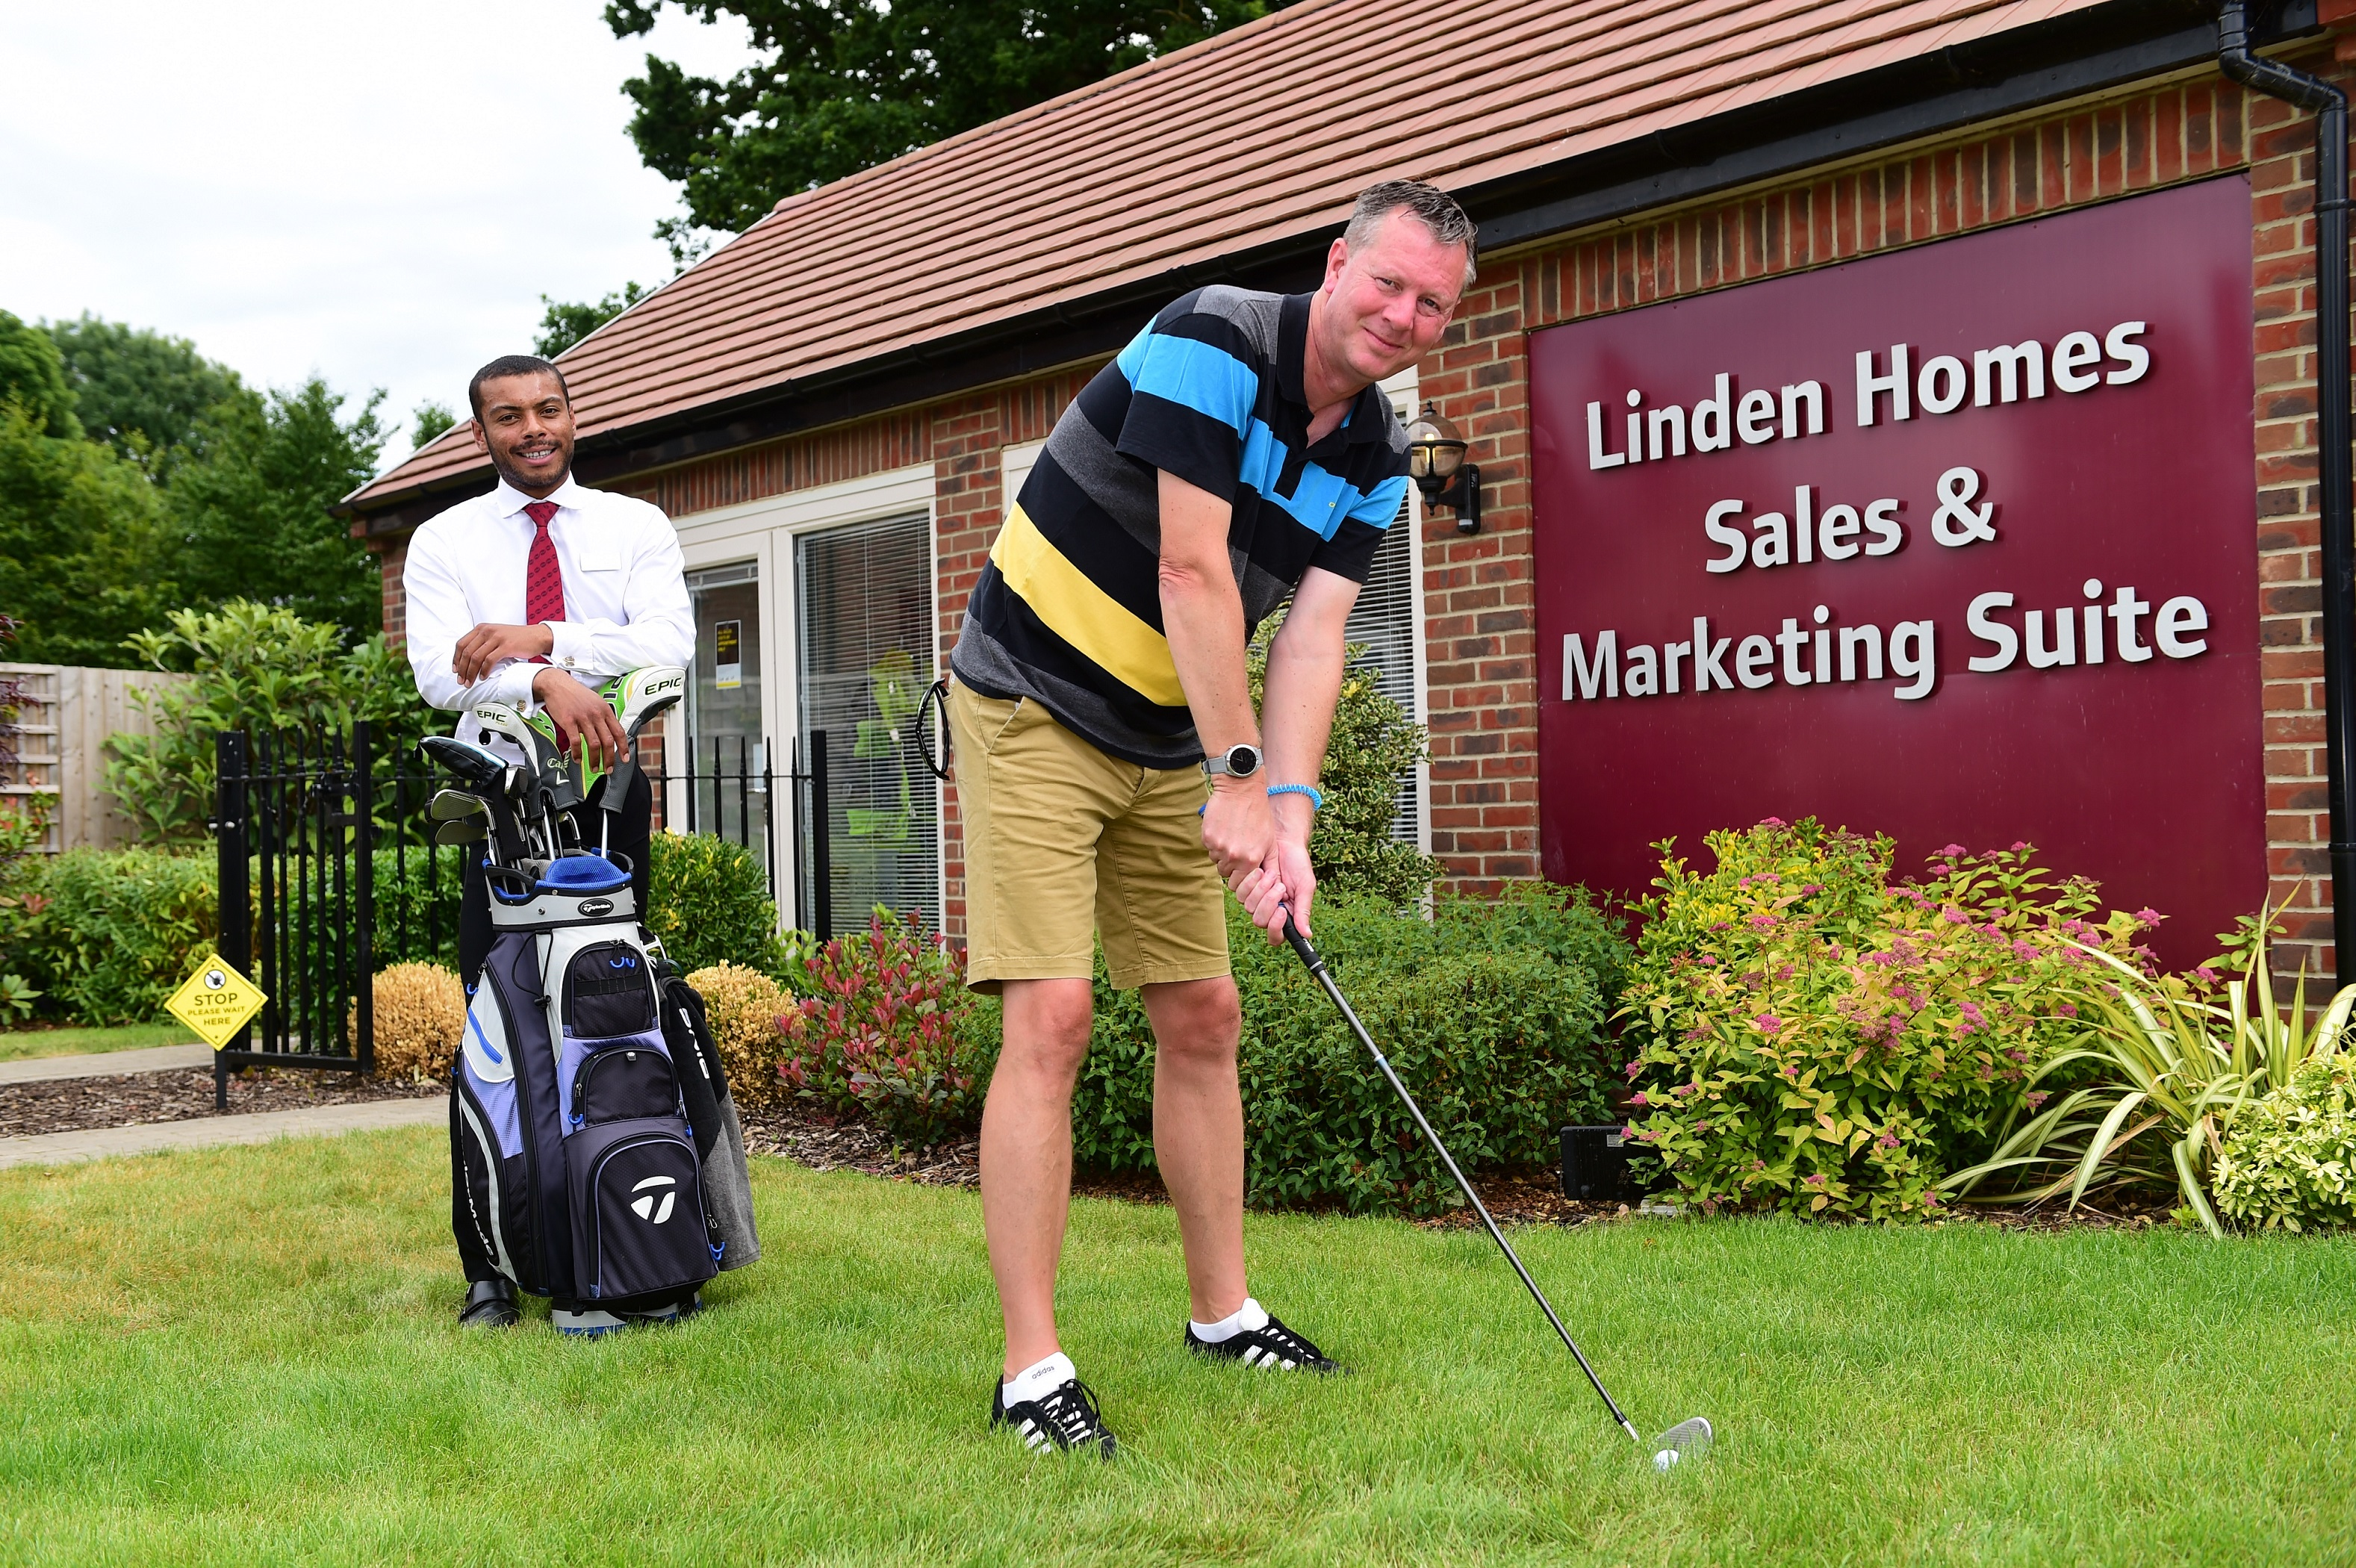 Golf fundraiser receives support from Linden Homes